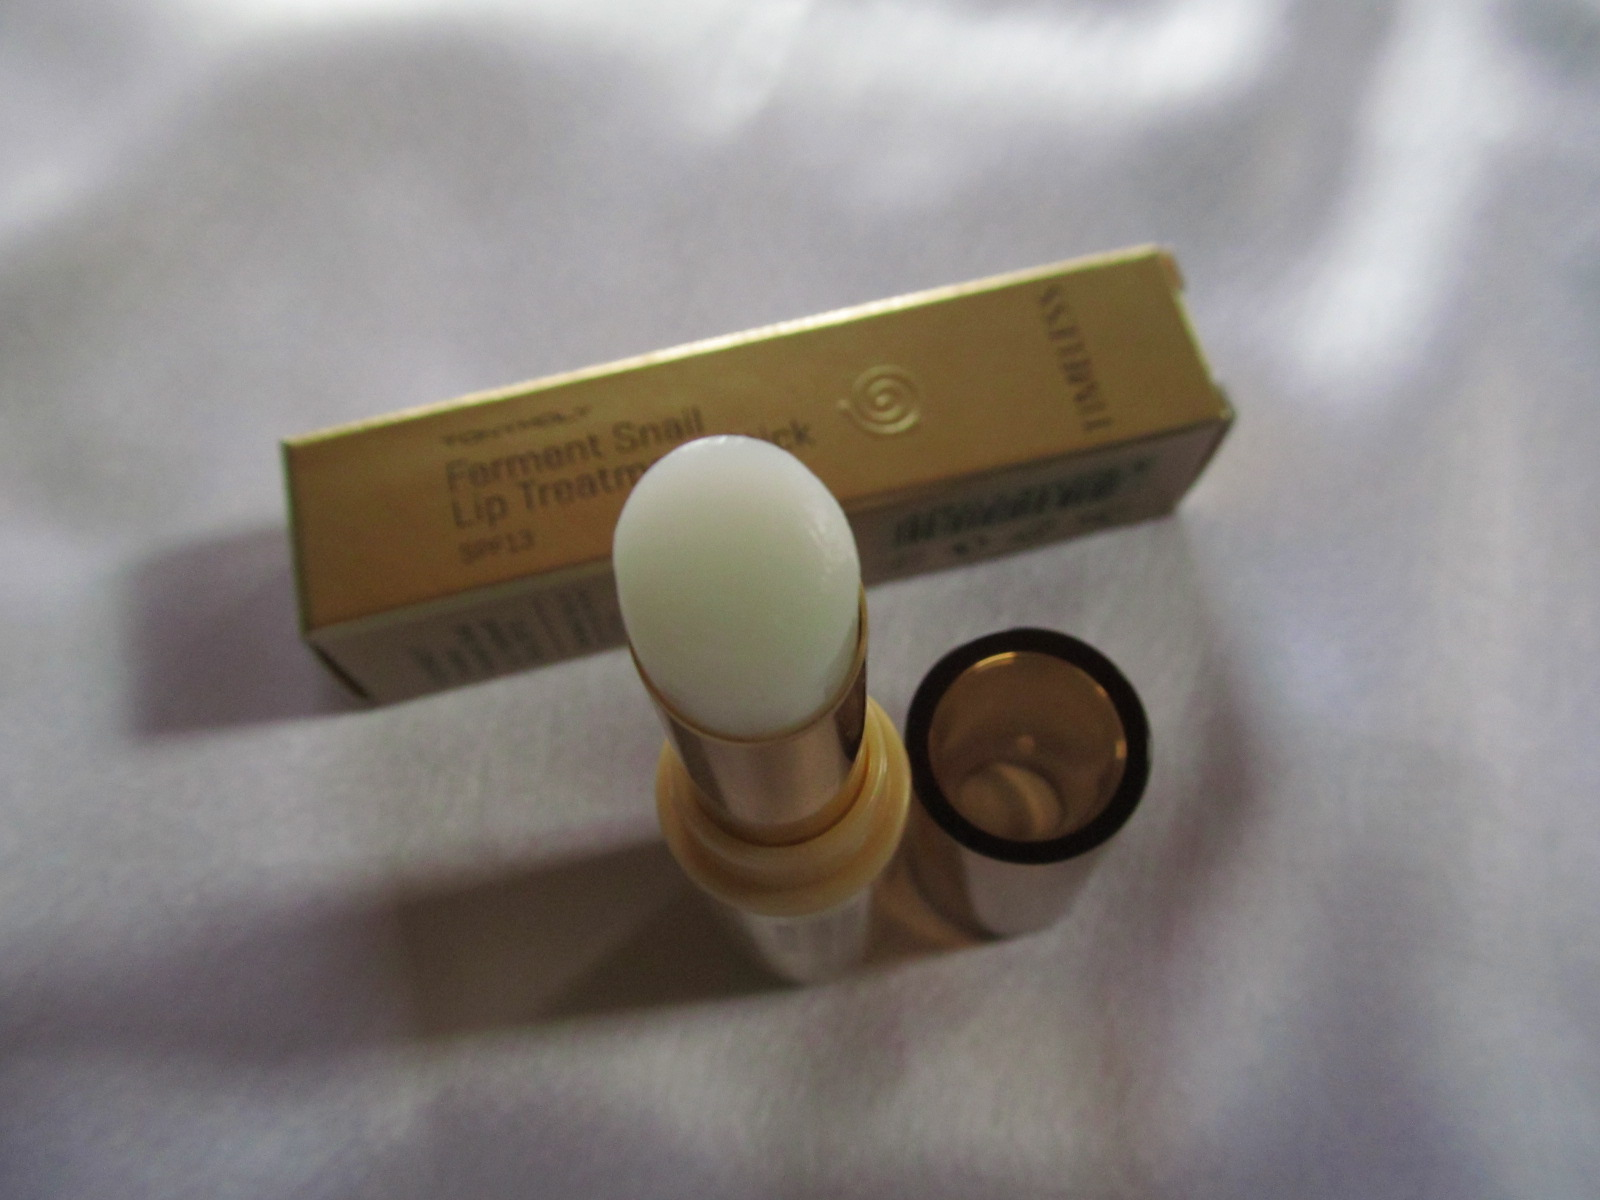 Tonymoly Timeless Ferment Snail Lip Treatment Stick Review